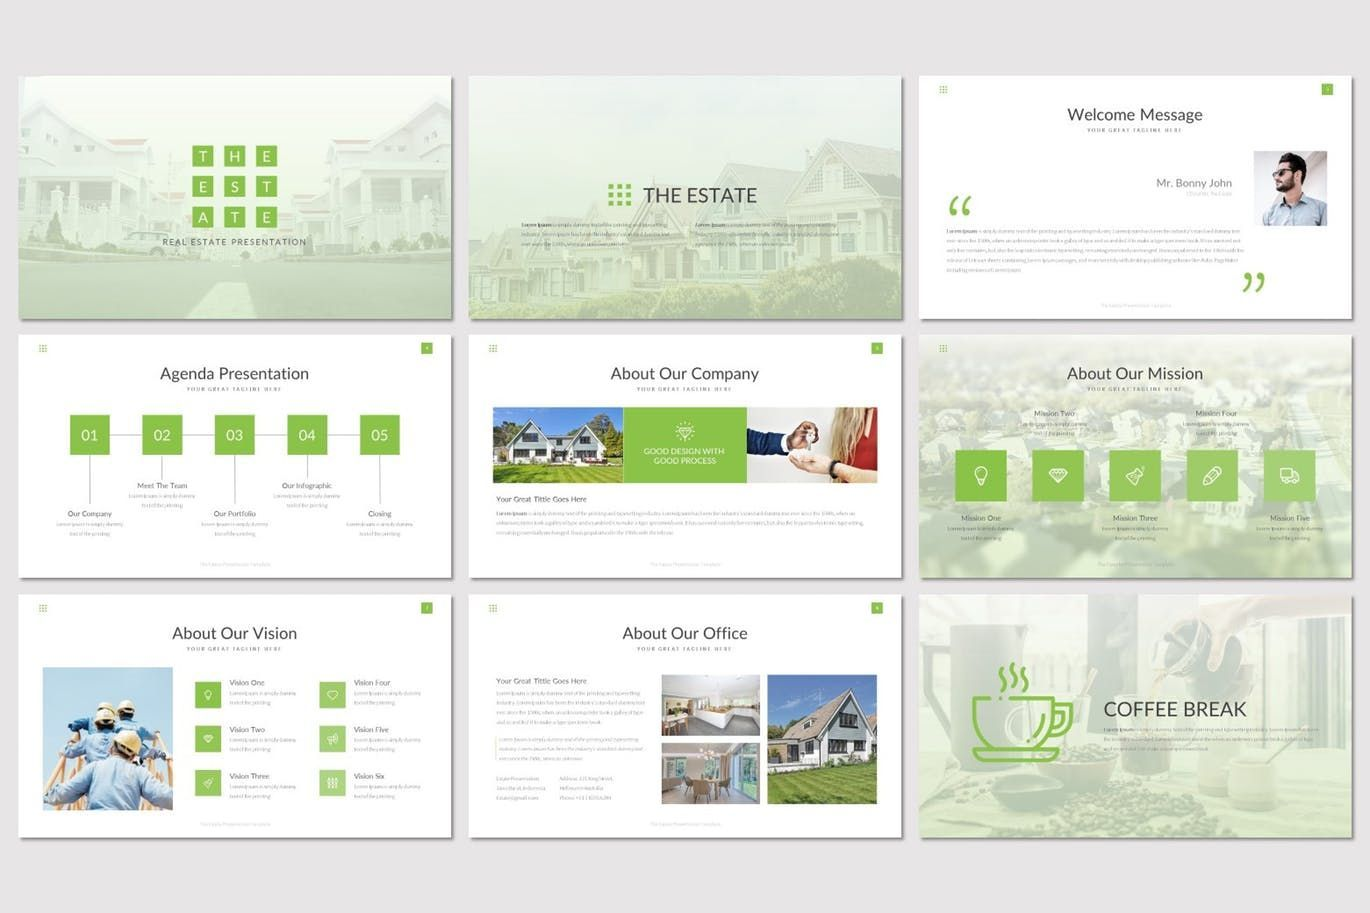 The Estate - PowerPoint Template, Slide 2, 07519, Presentation Templates — PoweredTemplate.com